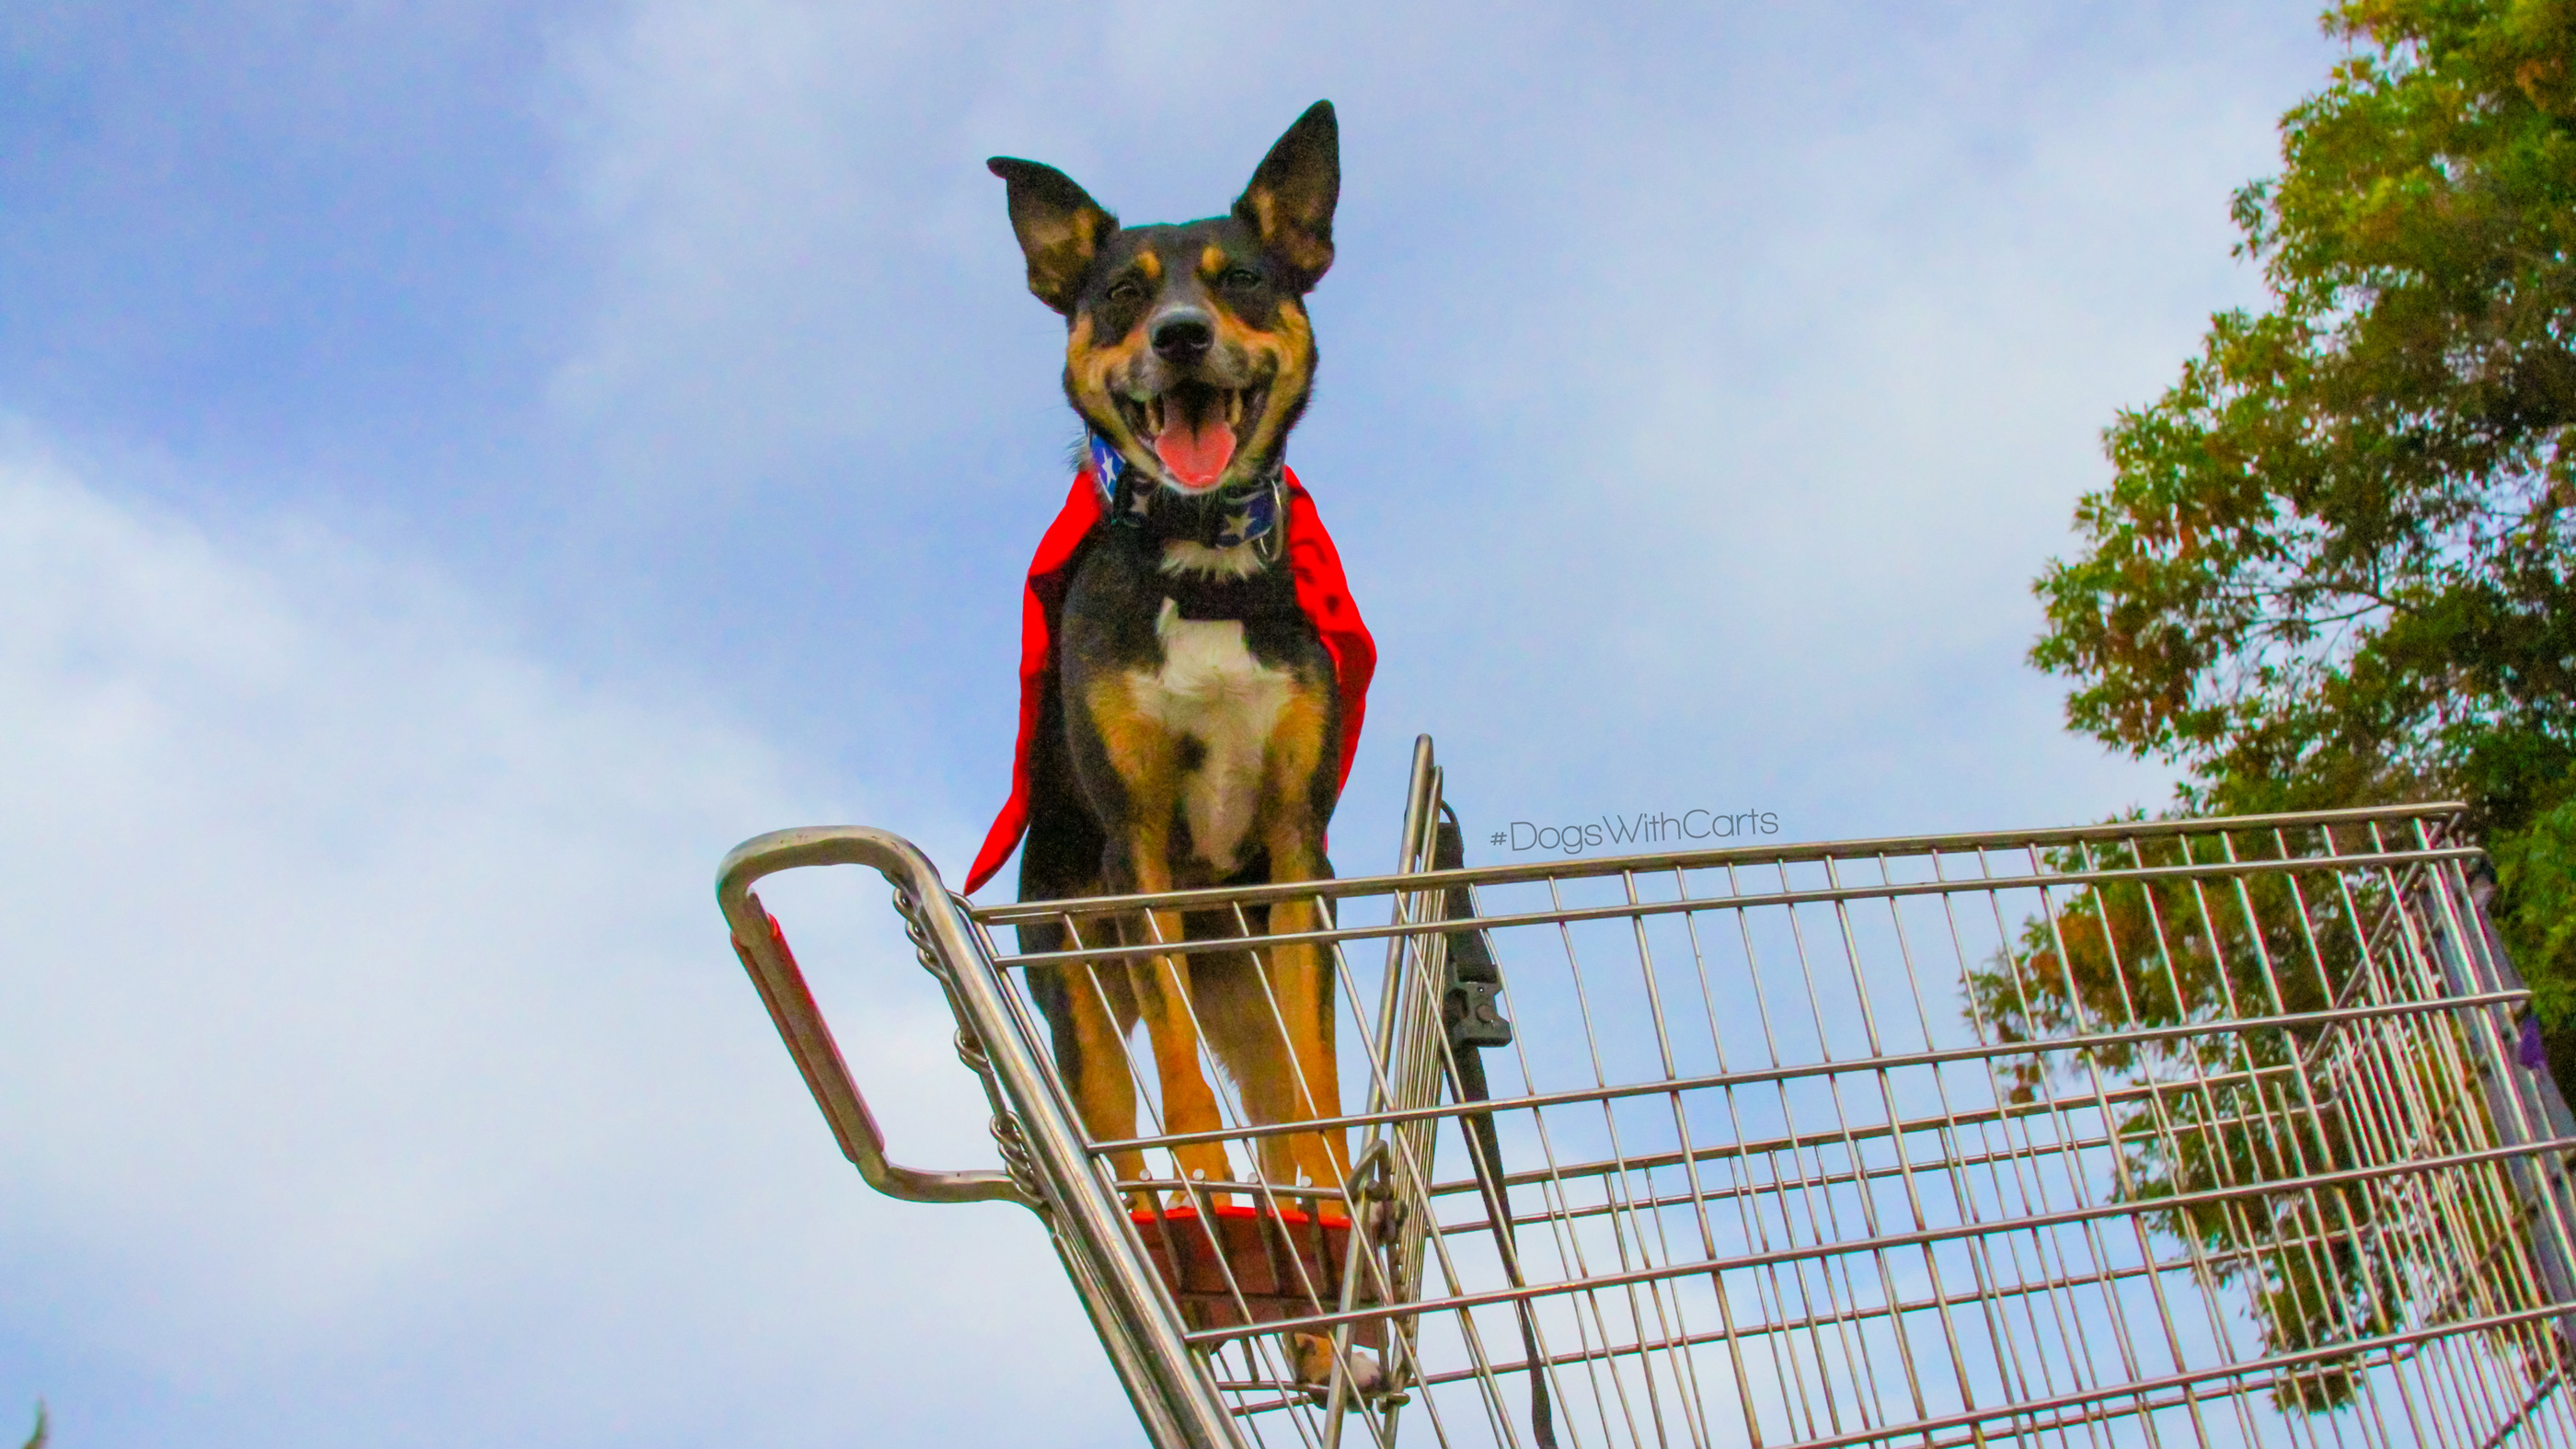 Super Dogs in Carts: #DogsWithCarts for Wordless Wednesday